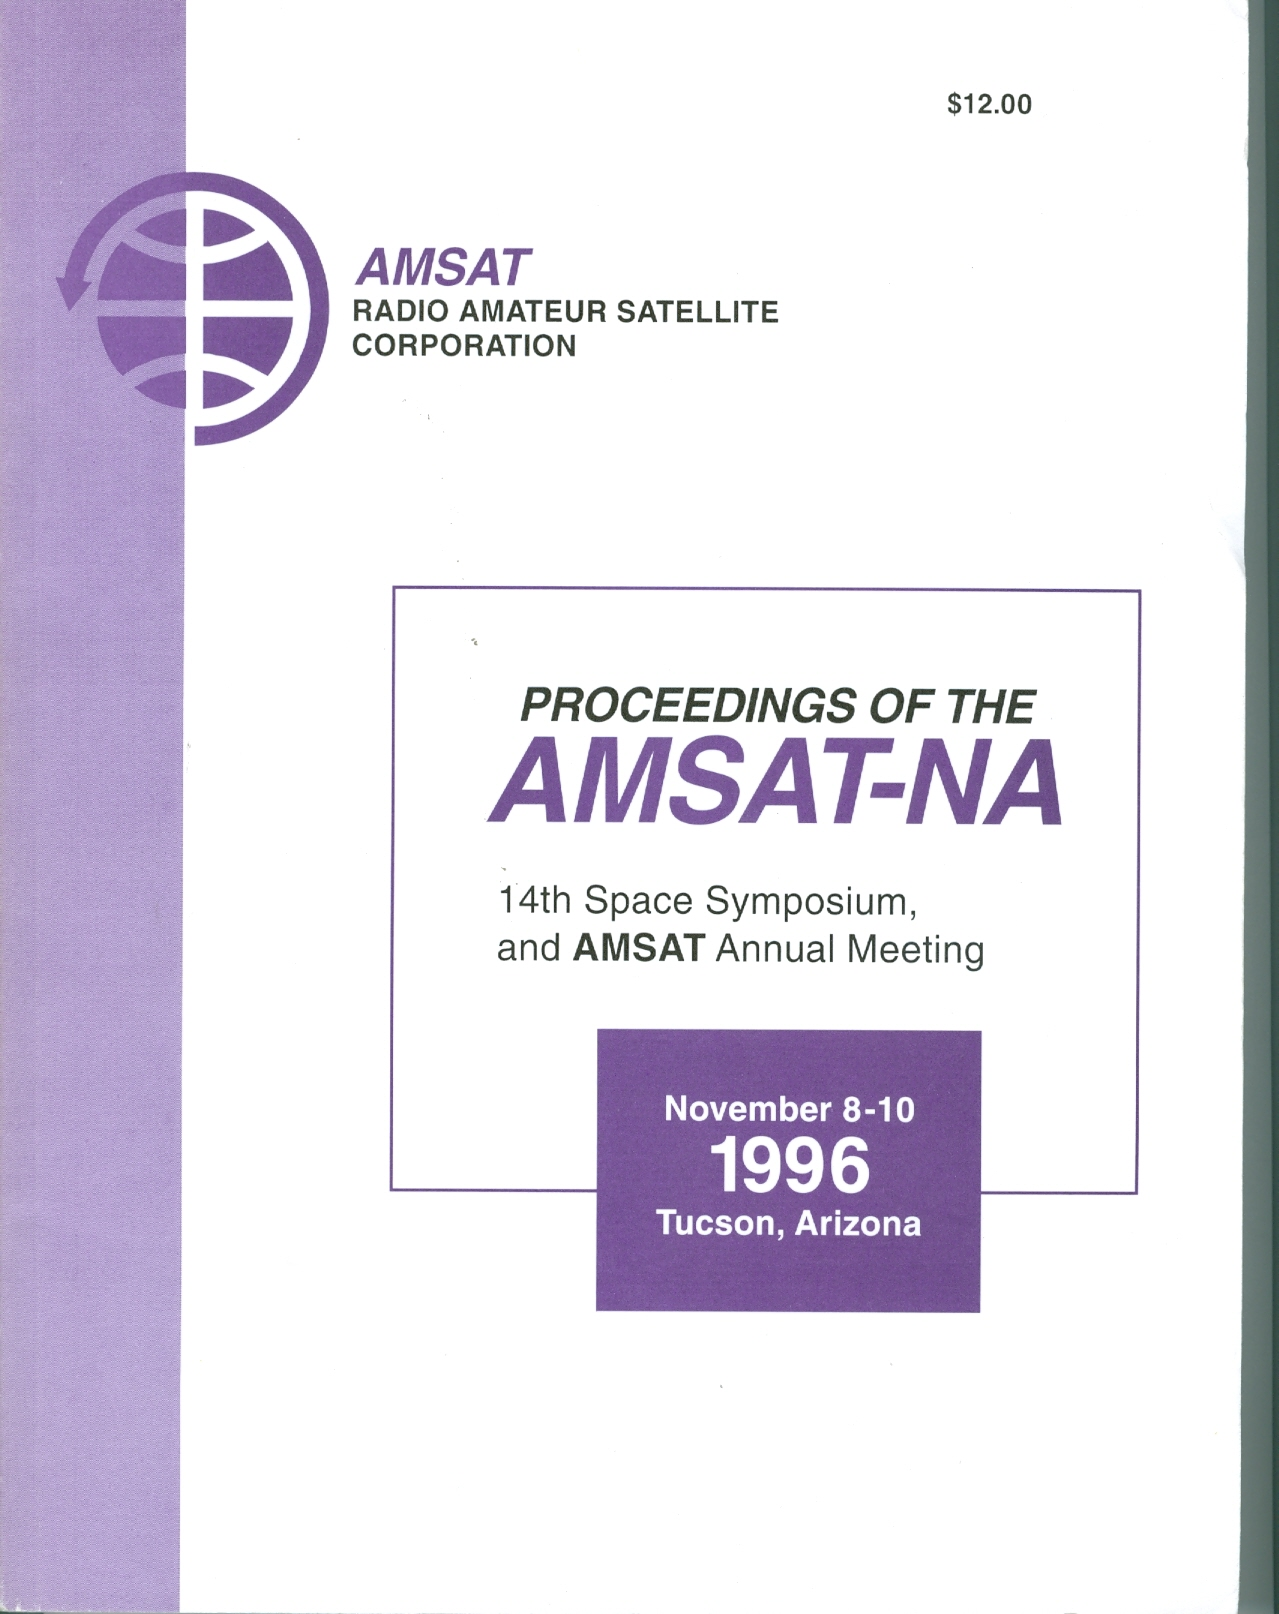 Proceedings of the AMSAT-NA 14th Space Symposium and AMSAT Annual Meeting, November 8-10, 1966 Tucson, Arizona